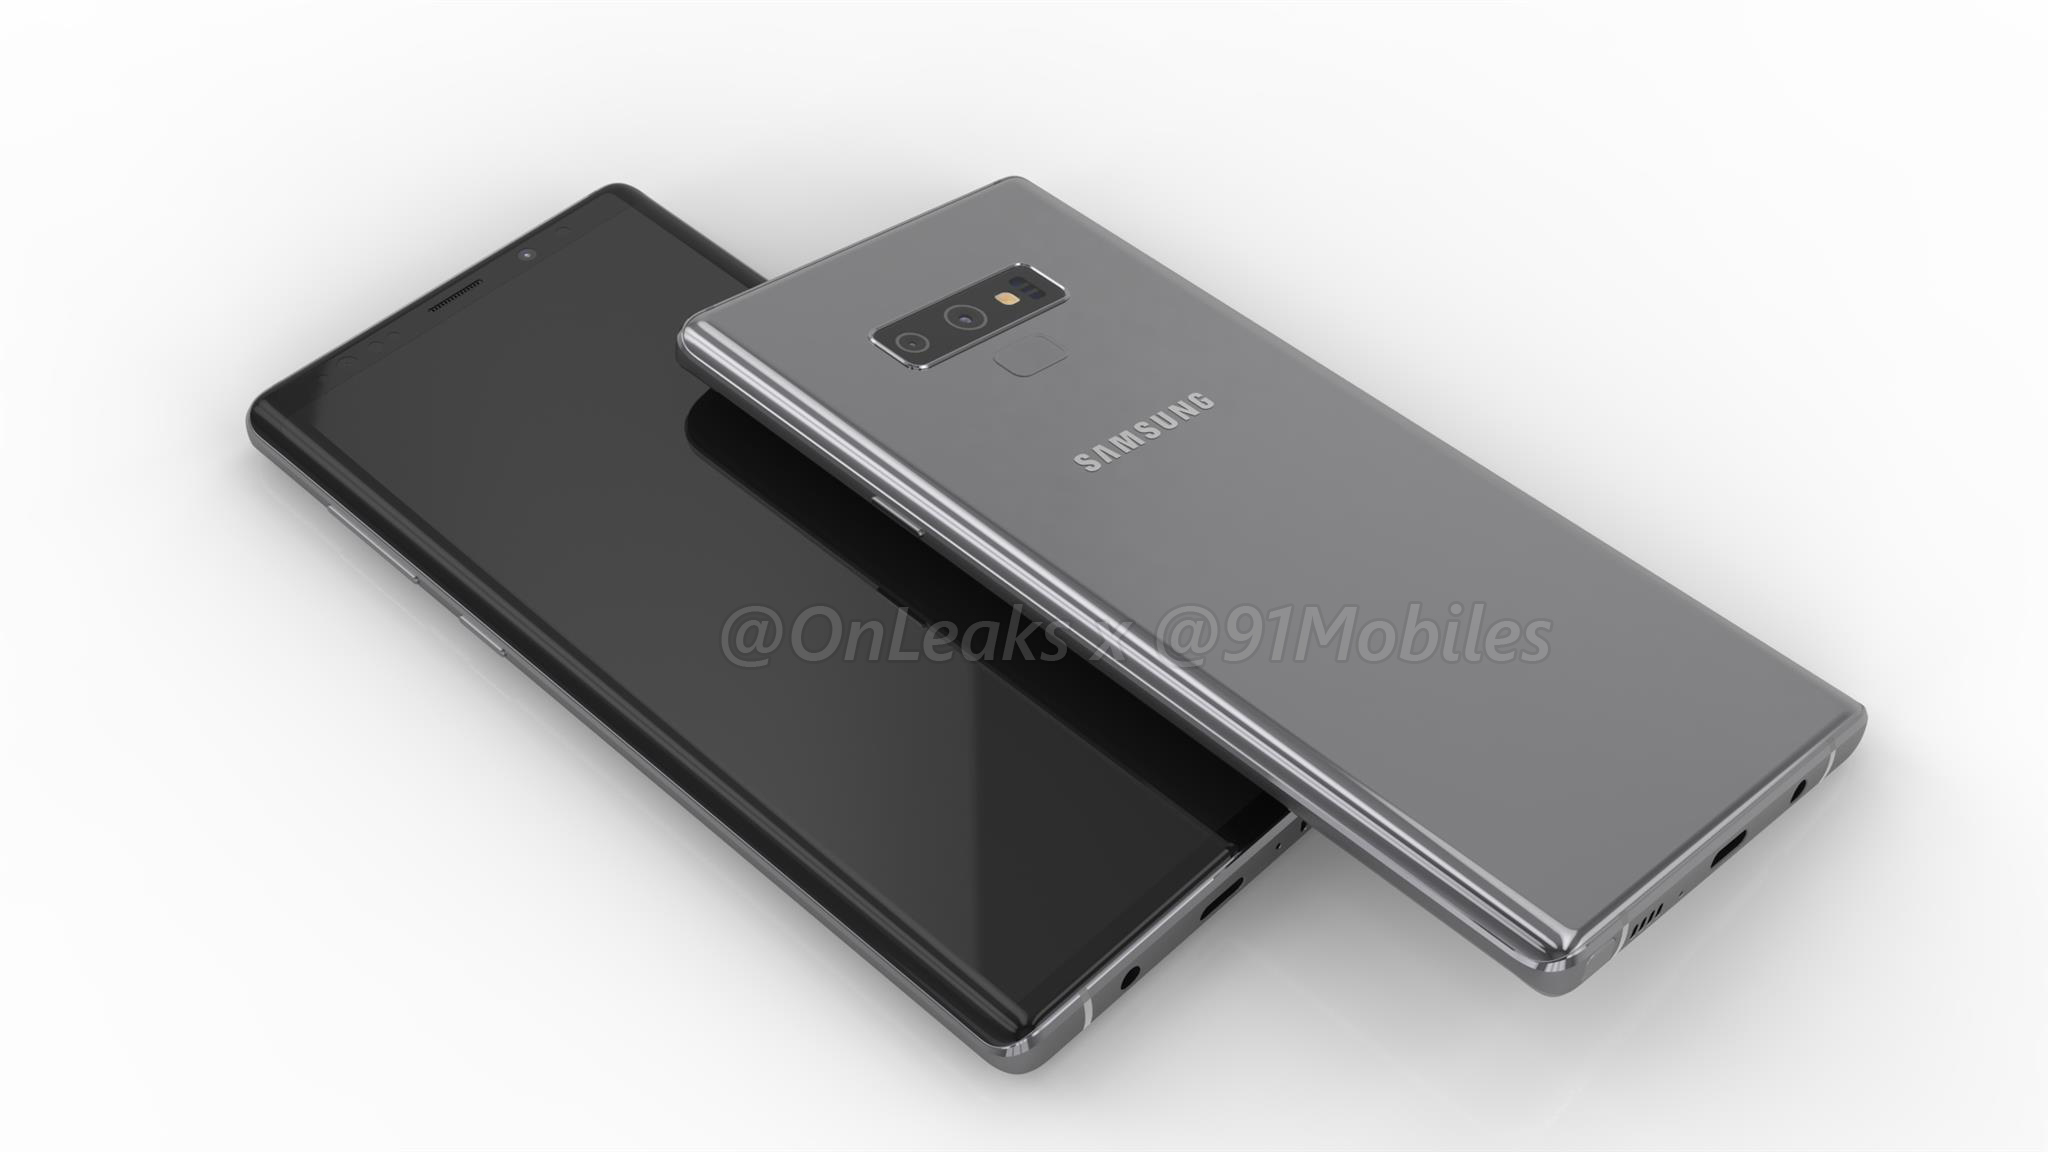 Poll] What's your opinion of the Galaxy Note 9 seen in the leaked